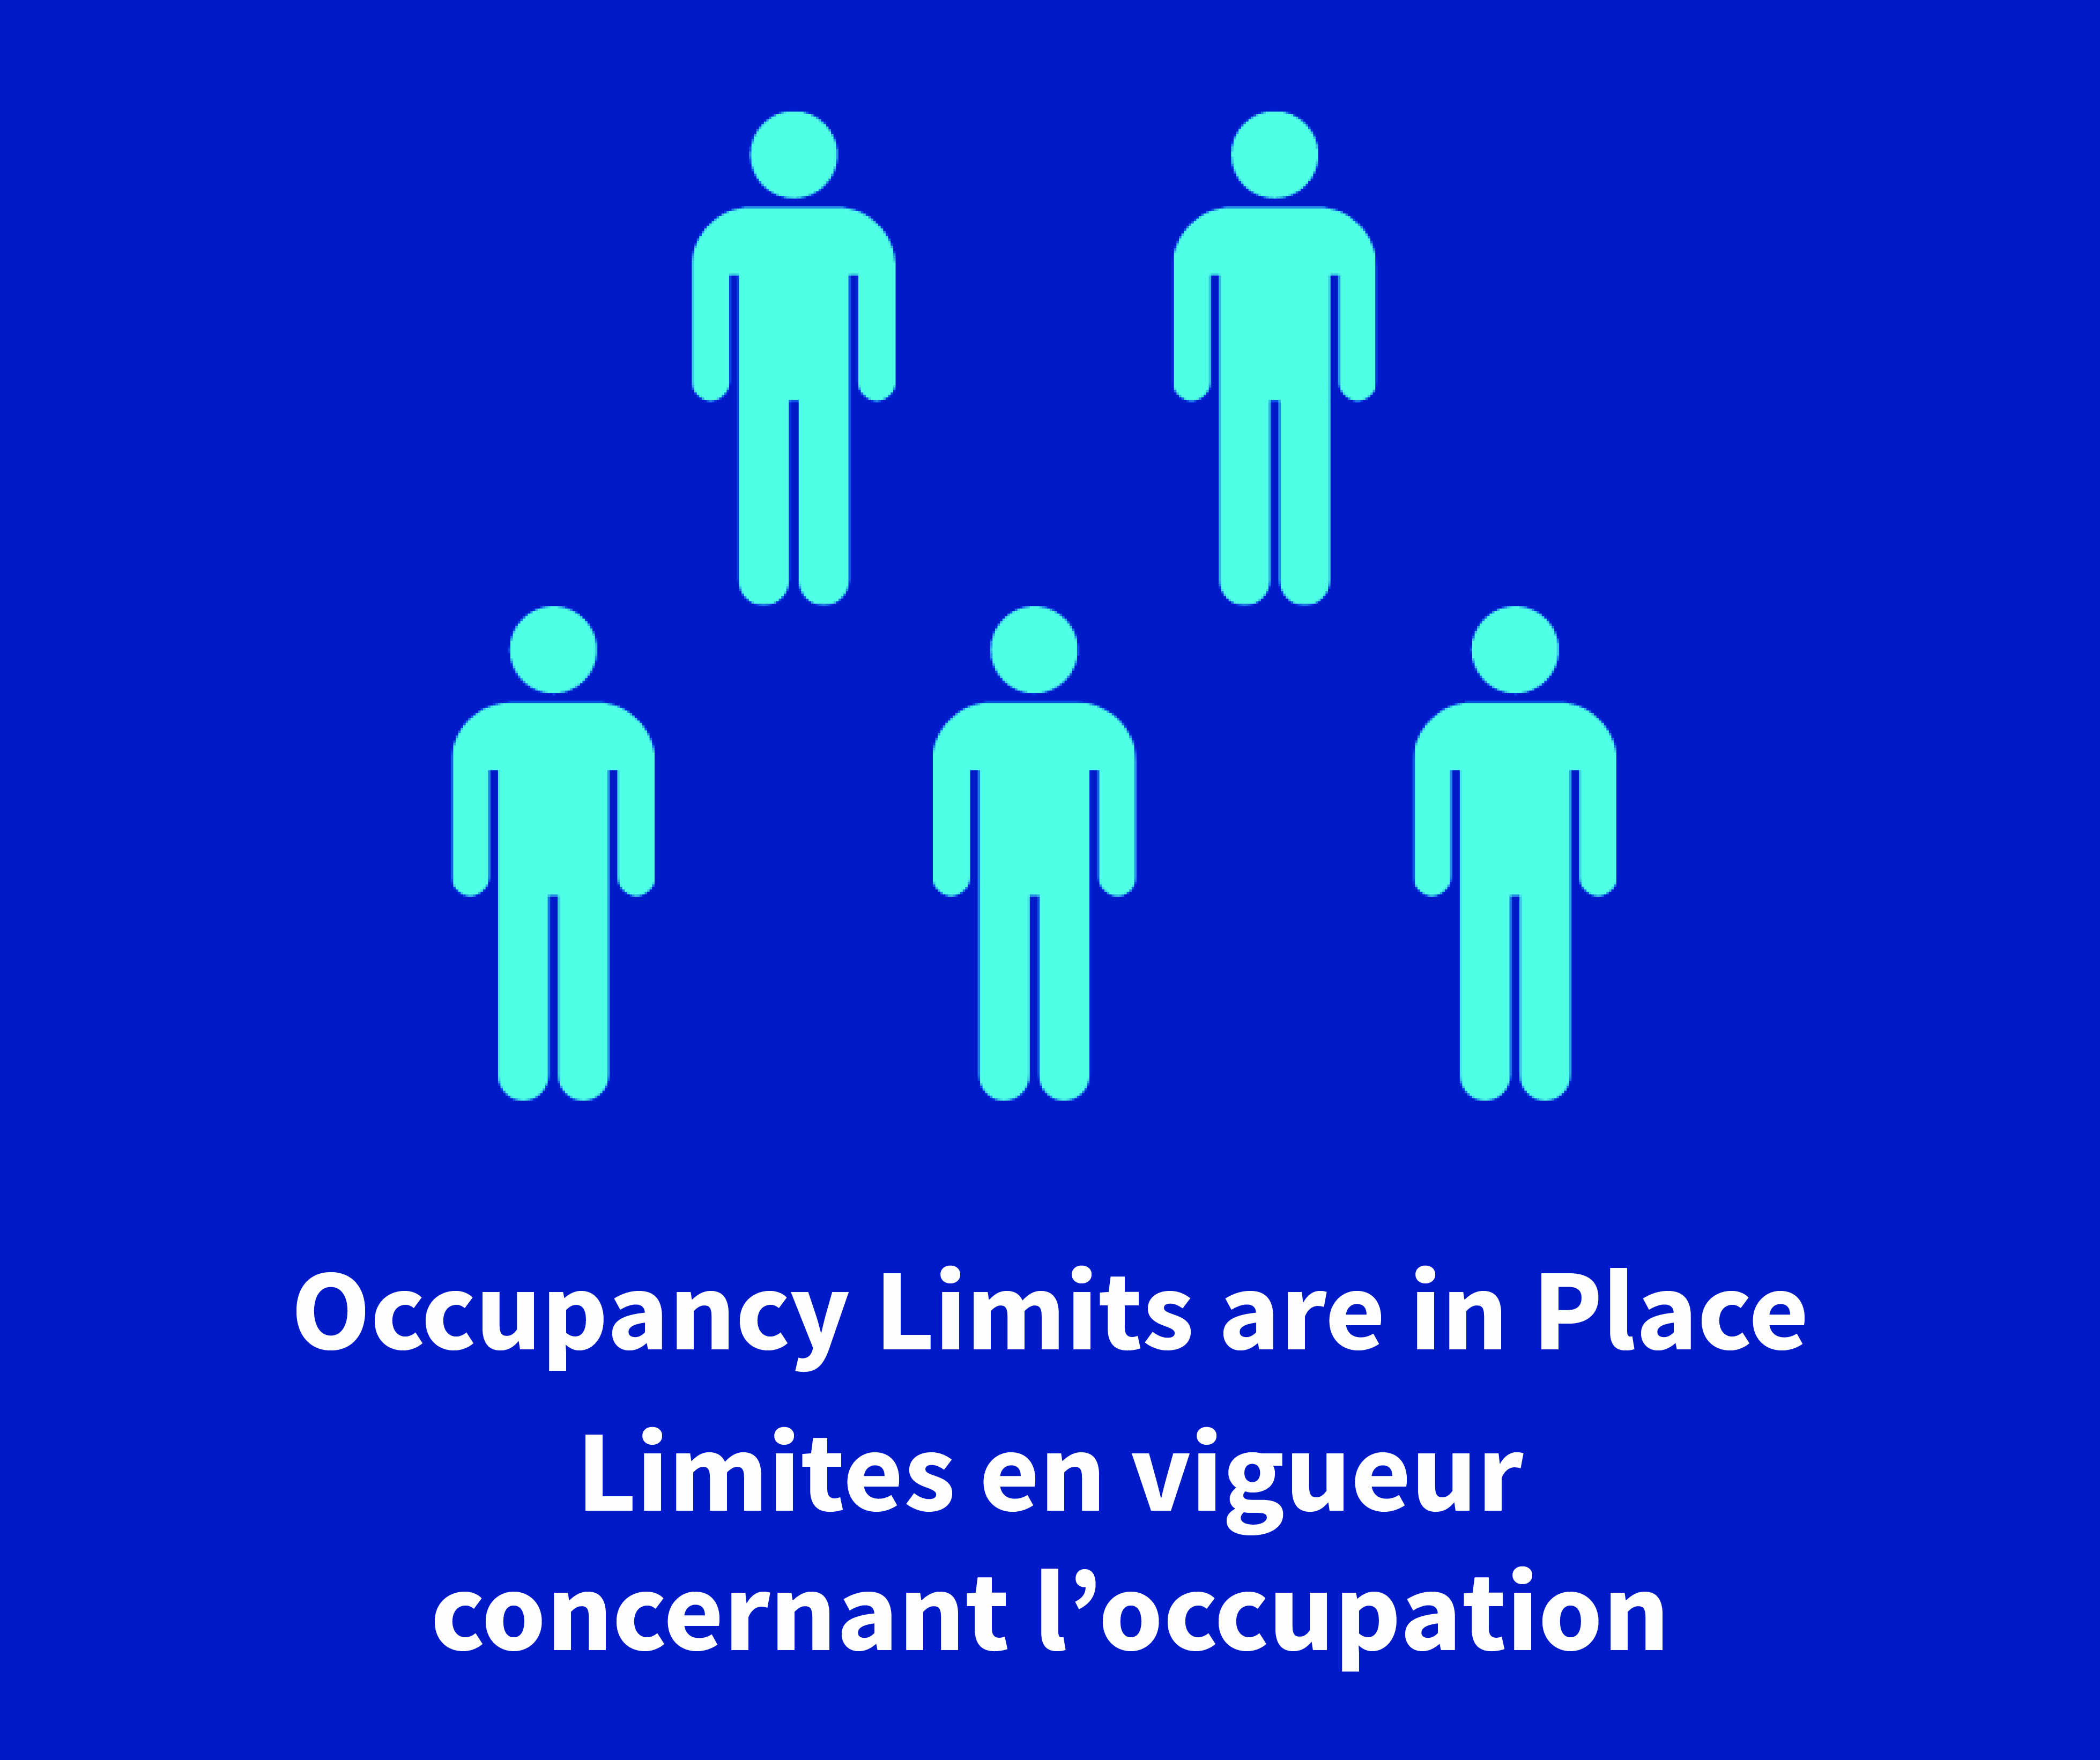 Occupancy limits are in place